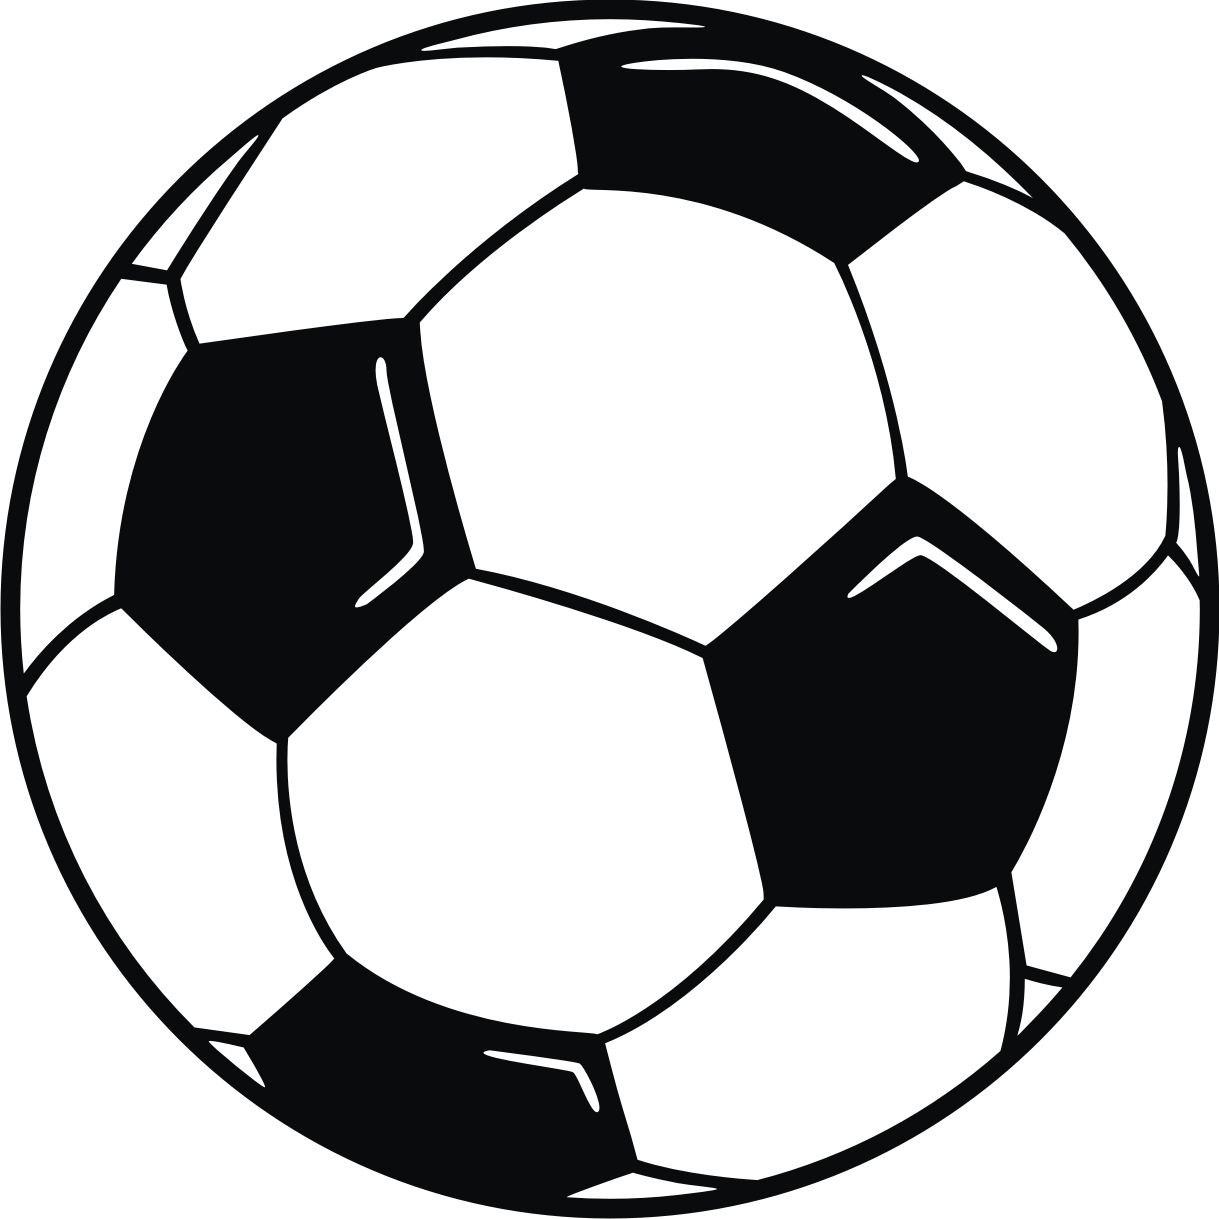 Football Ball Image  871.59 Kb